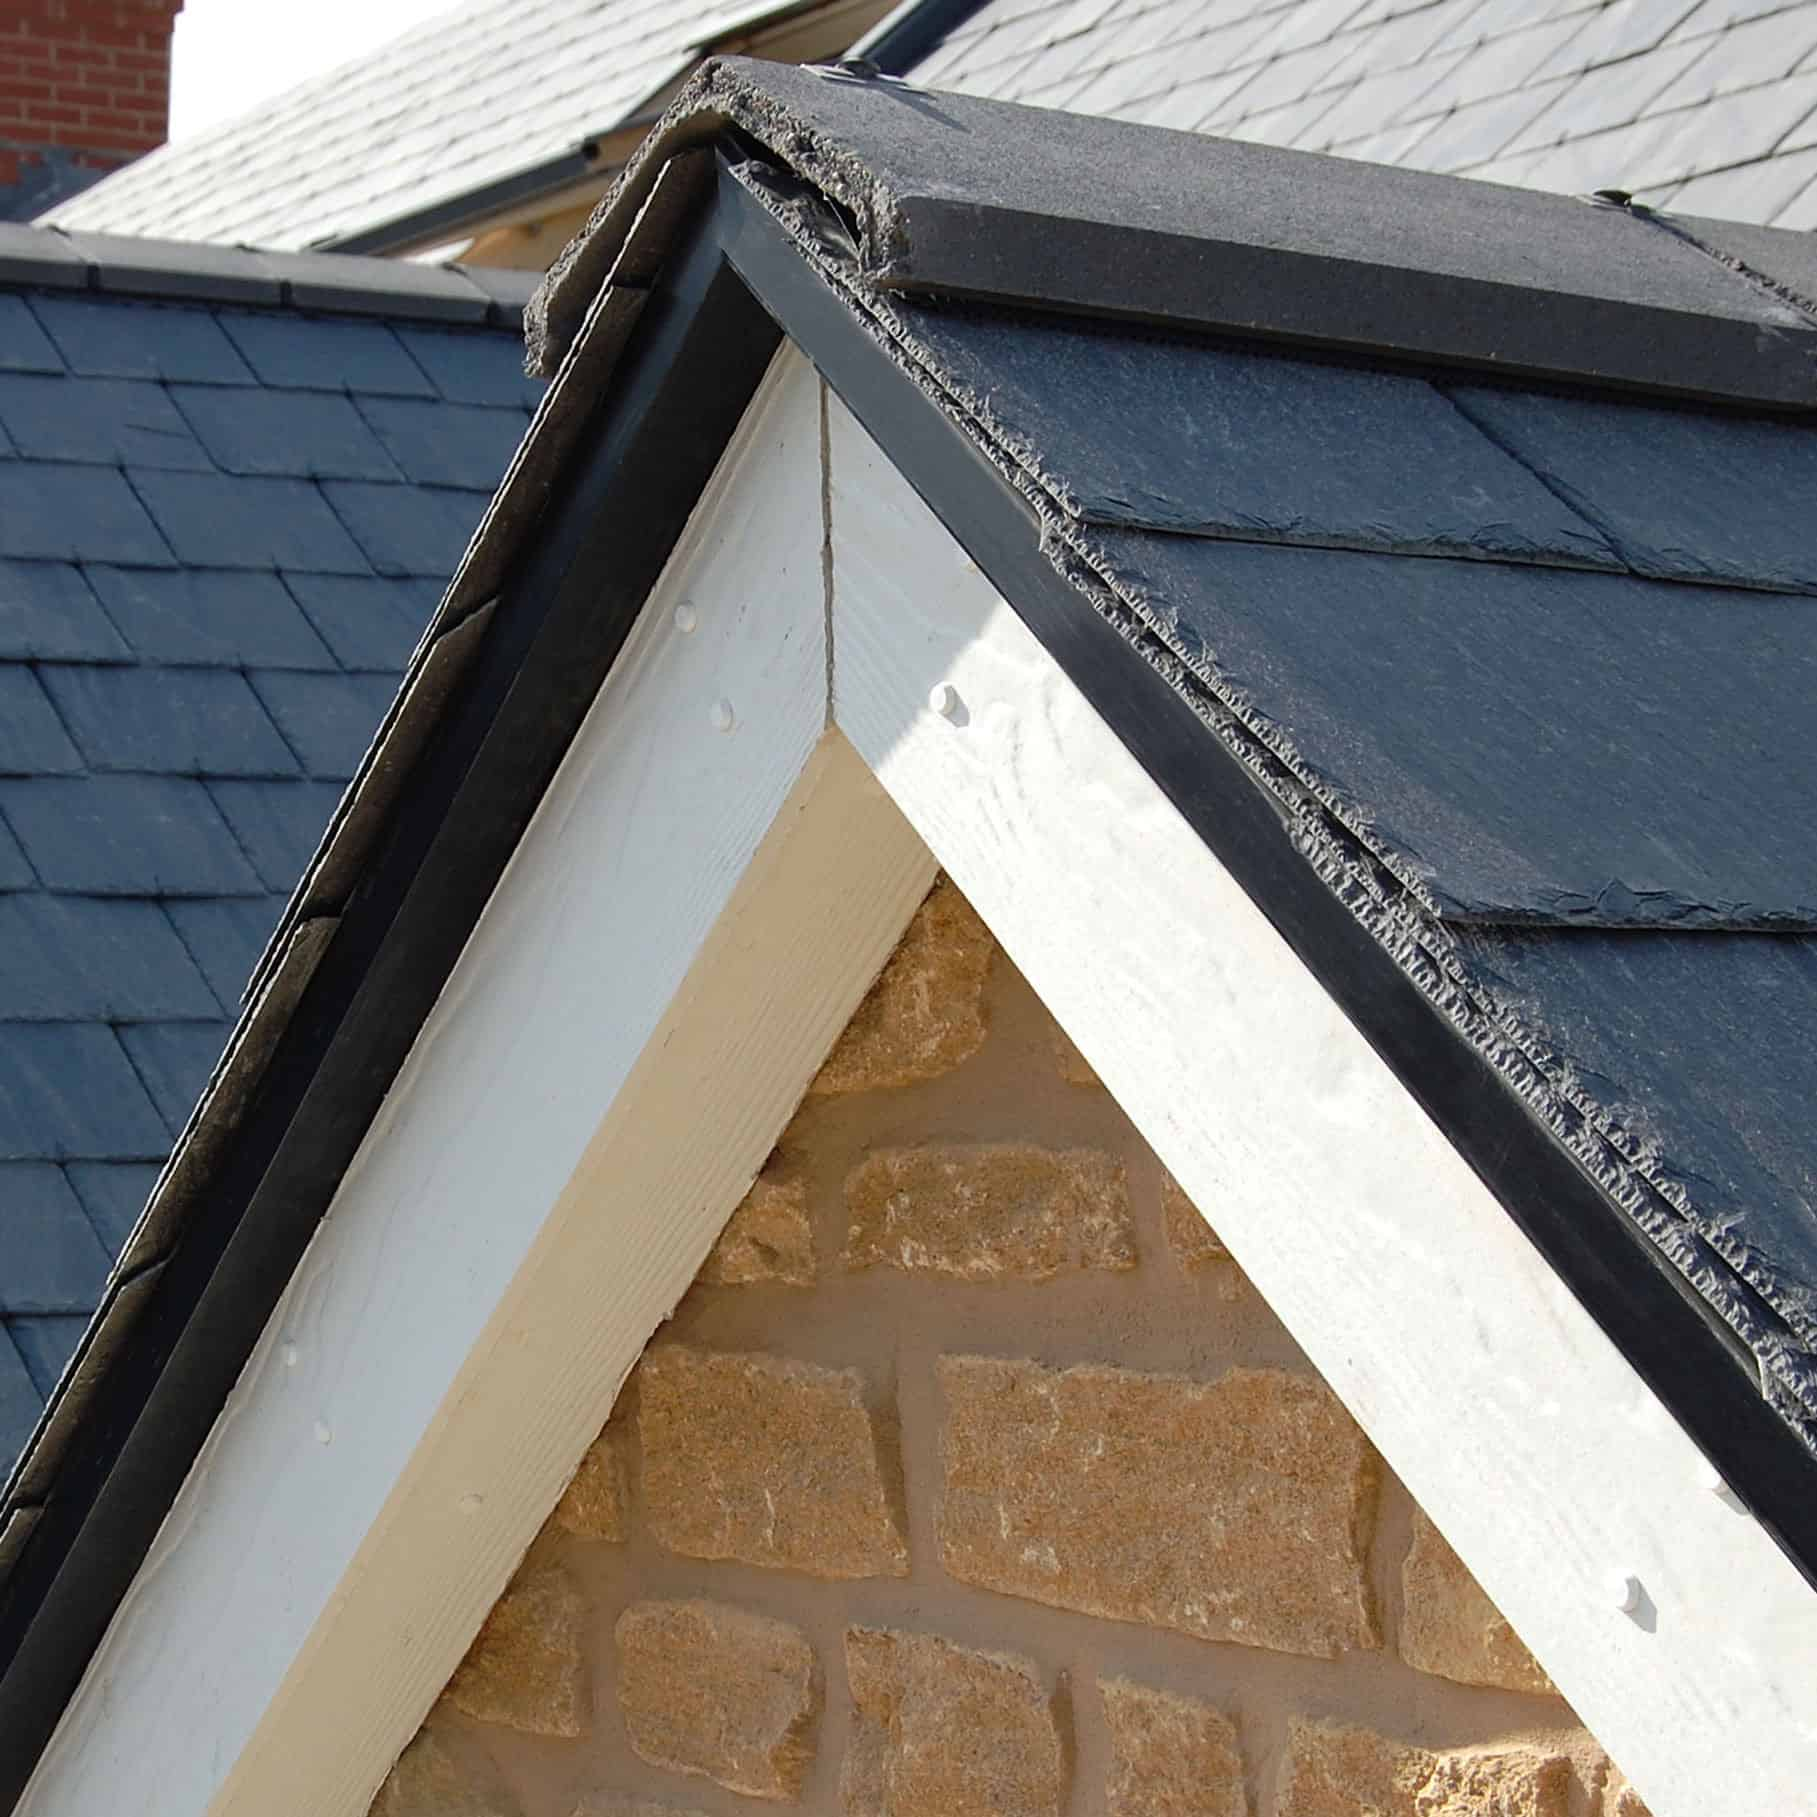 Easy Verge Continuous Dry Verge For Slates Ajw Distribution